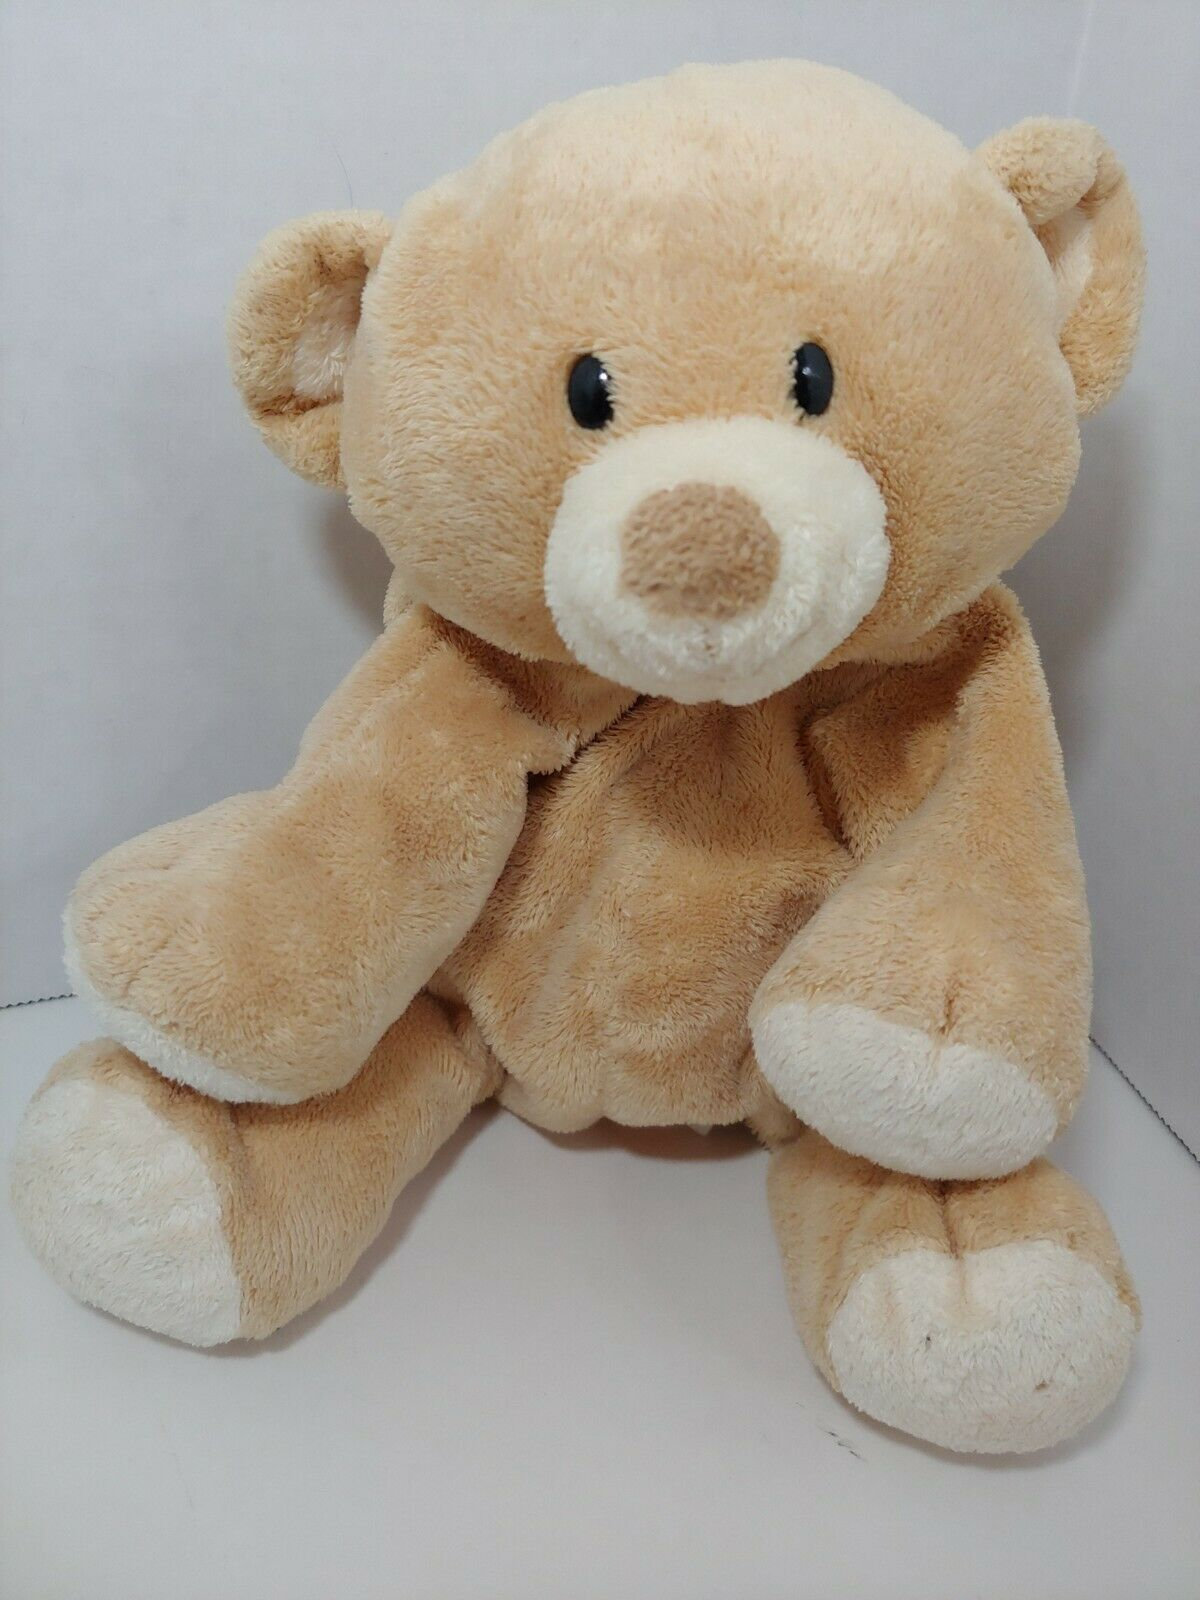 Primary image for Ty Pluffies Woods Tan cream Teddy Bear bean bag stuffed animal 2010 TyLux